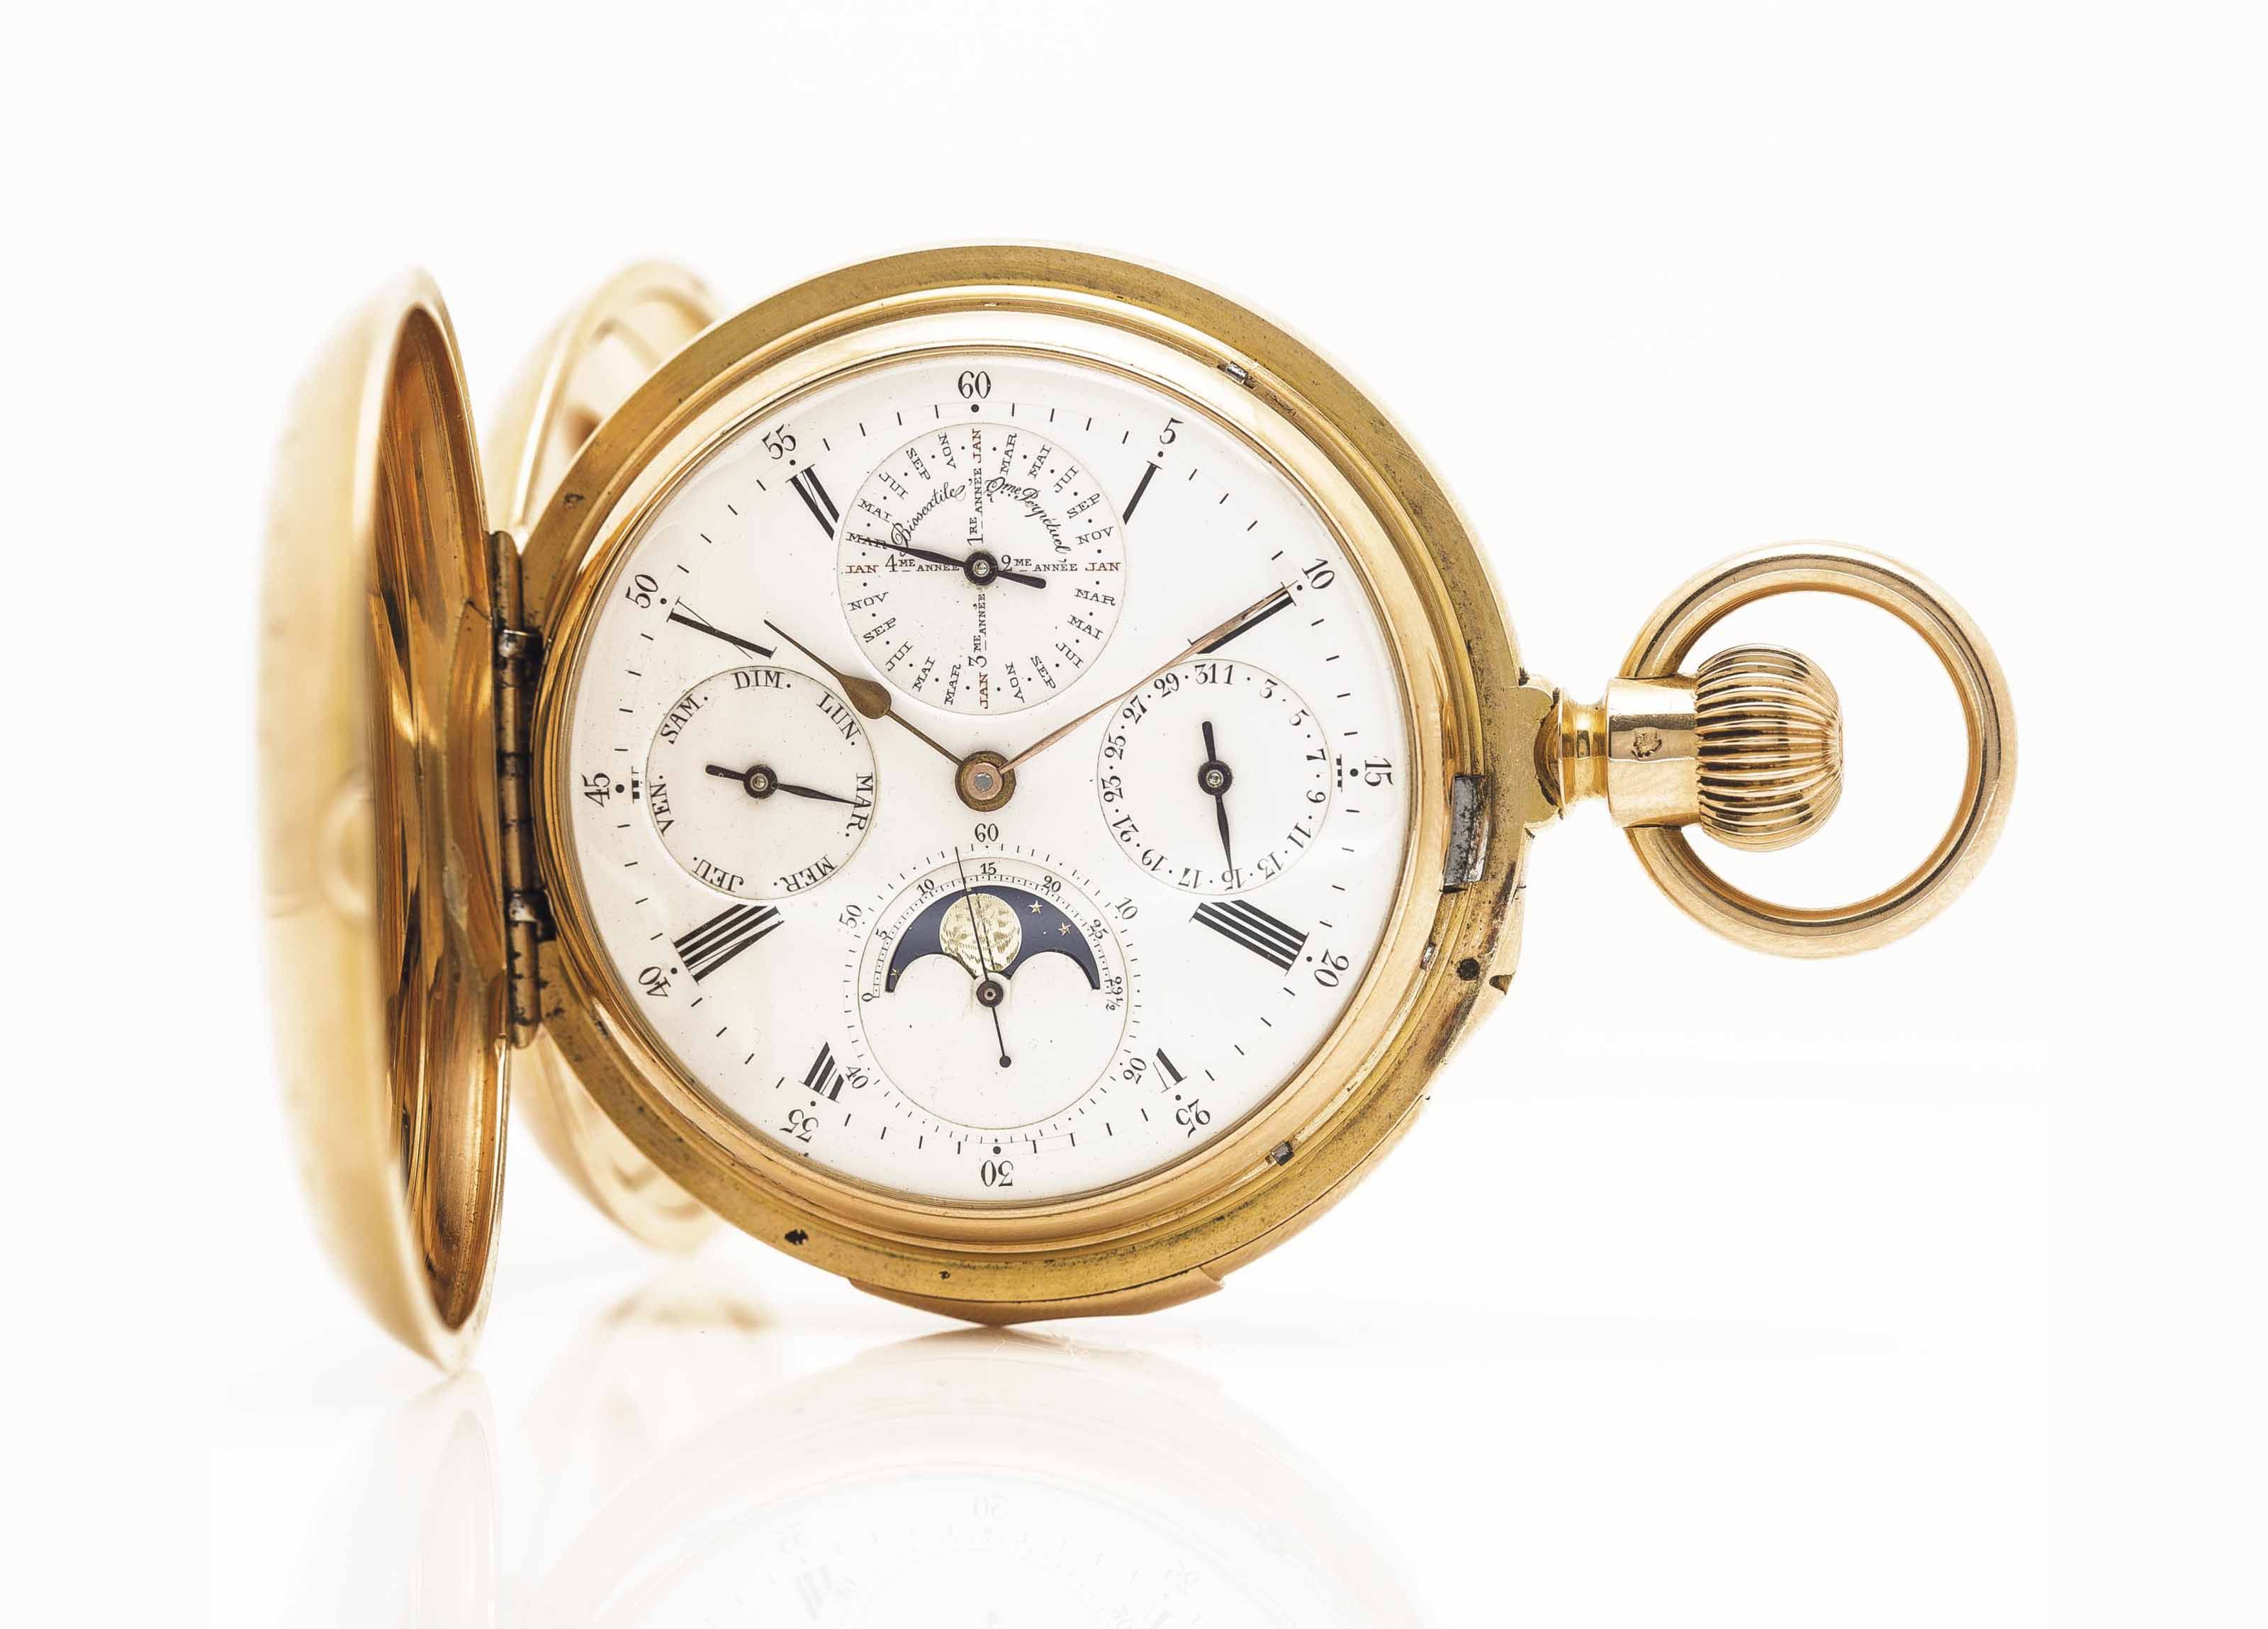 LOUIS AUDEMARS, MADE FOR BREGUET AN EXTREMELY FINE AND RARE ...